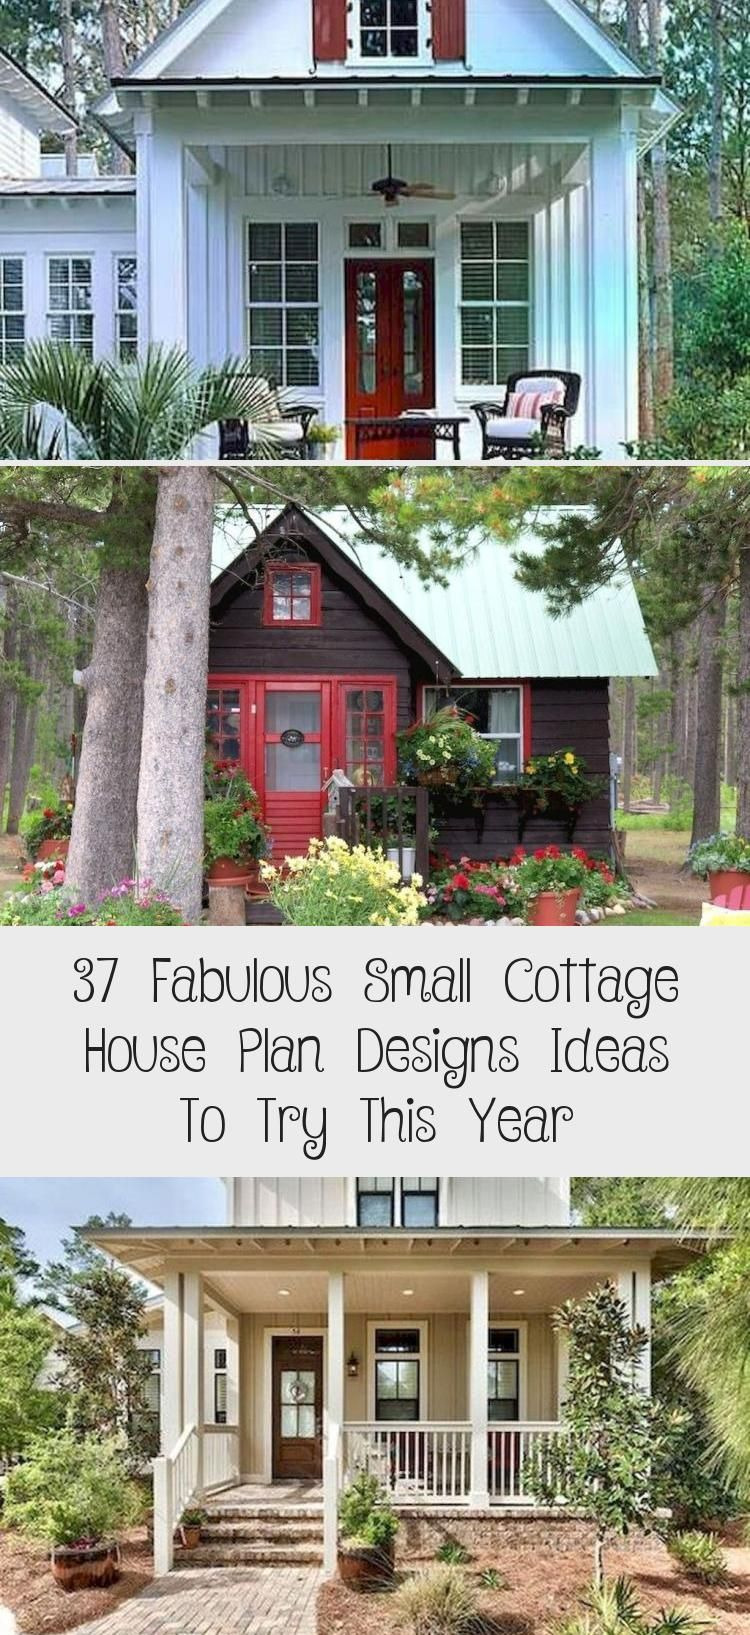 Unique Small House Designs Beautiful 37 Fabulous Small Cottage House Plan Designs Ideas to Try